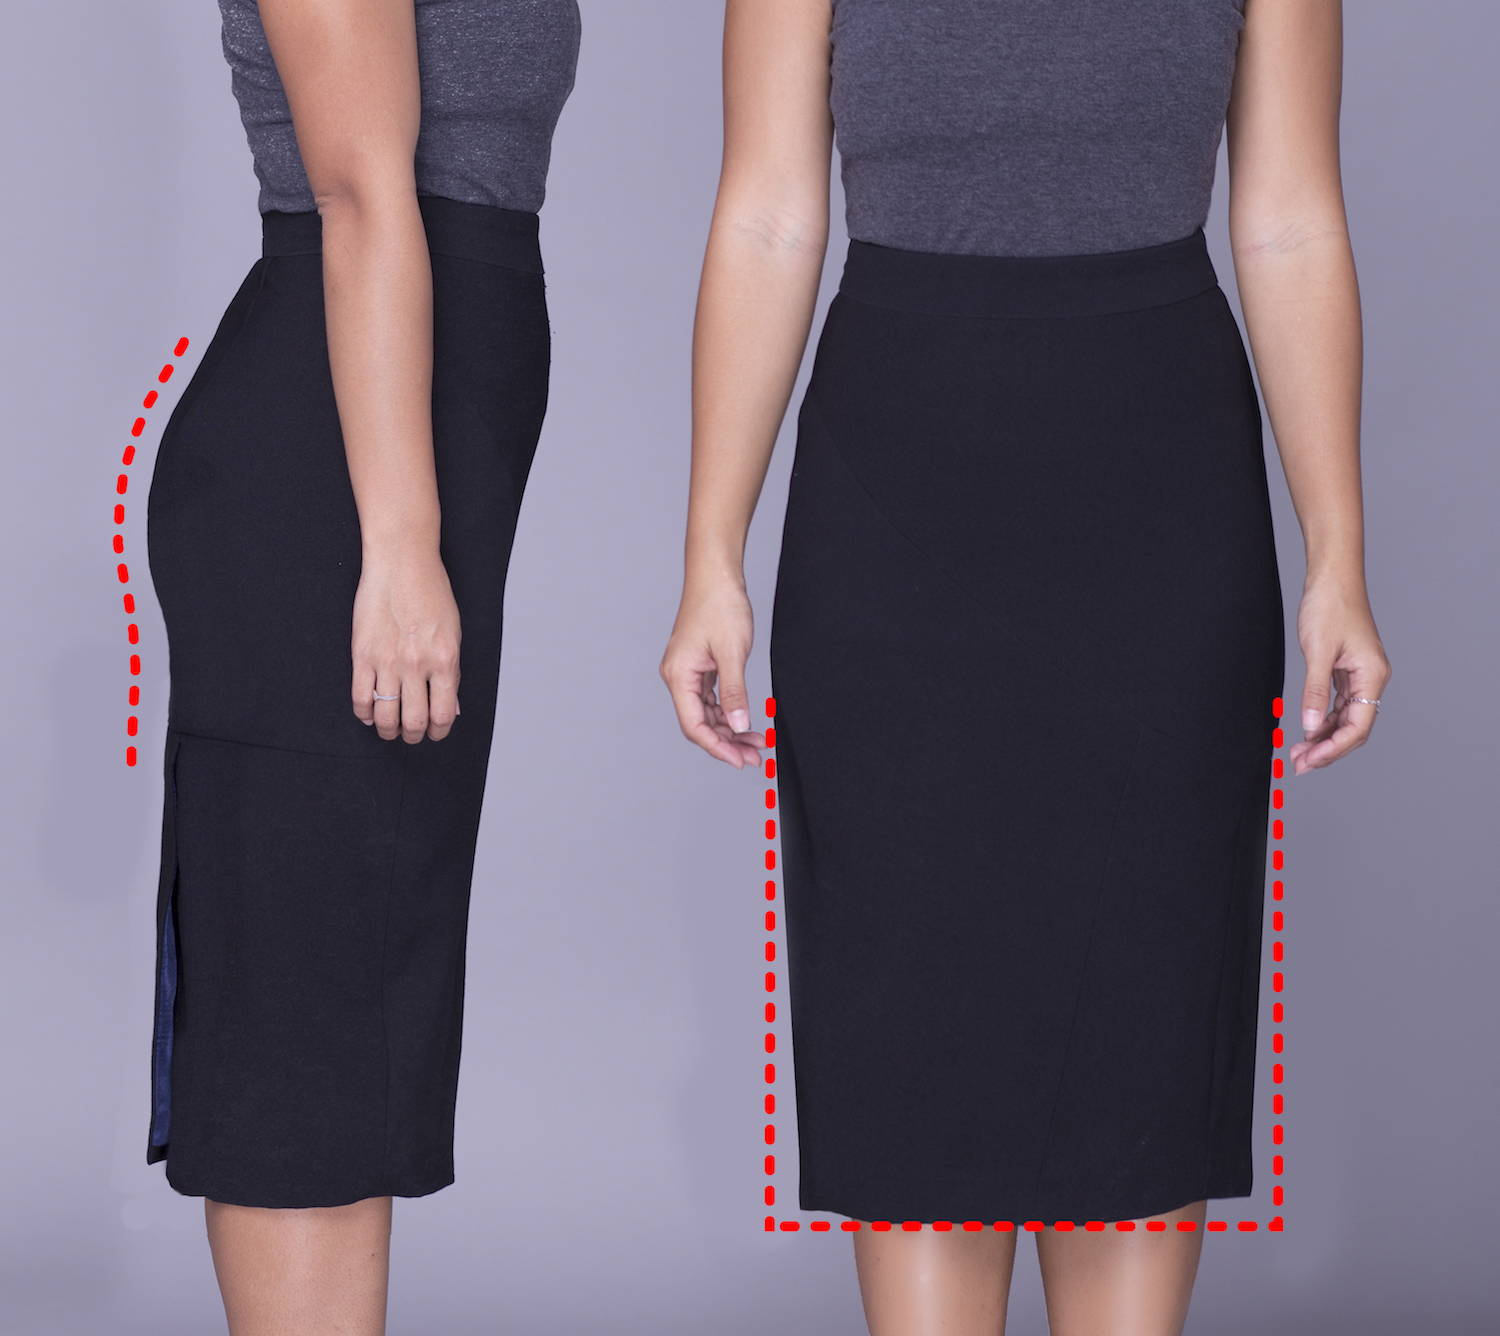 Rita Phil custom pencil skirts | Relaxed fit